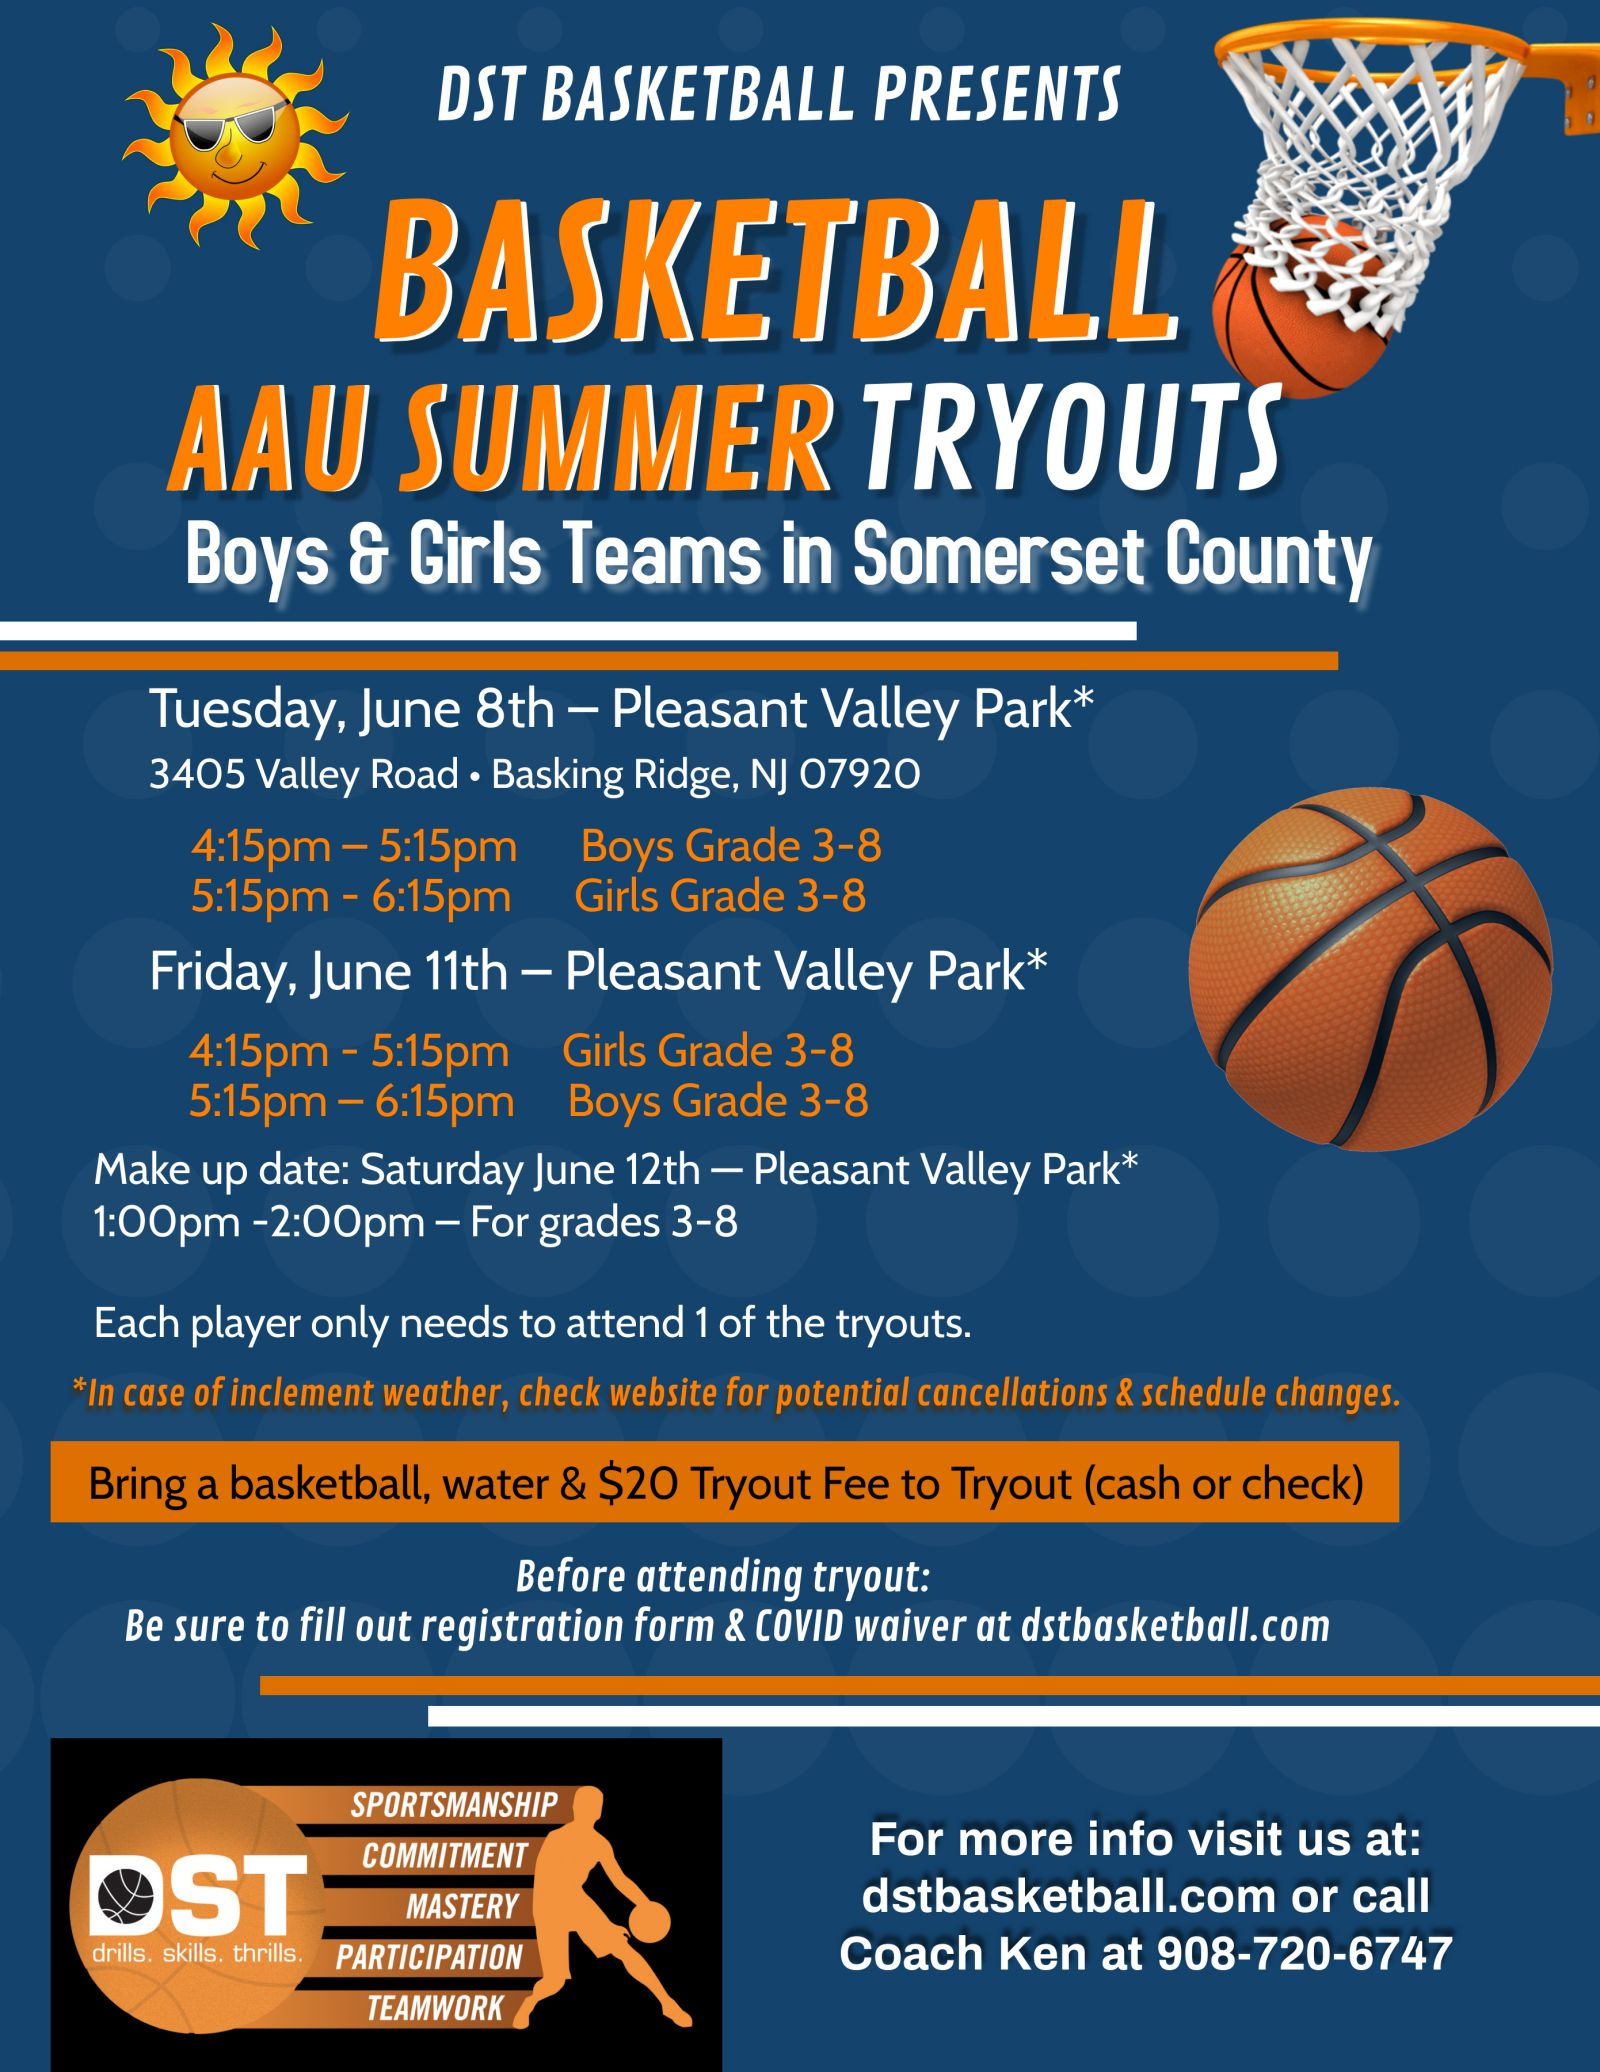 flyer for DST Basketball - Somerset County AAU Summer Tryouts